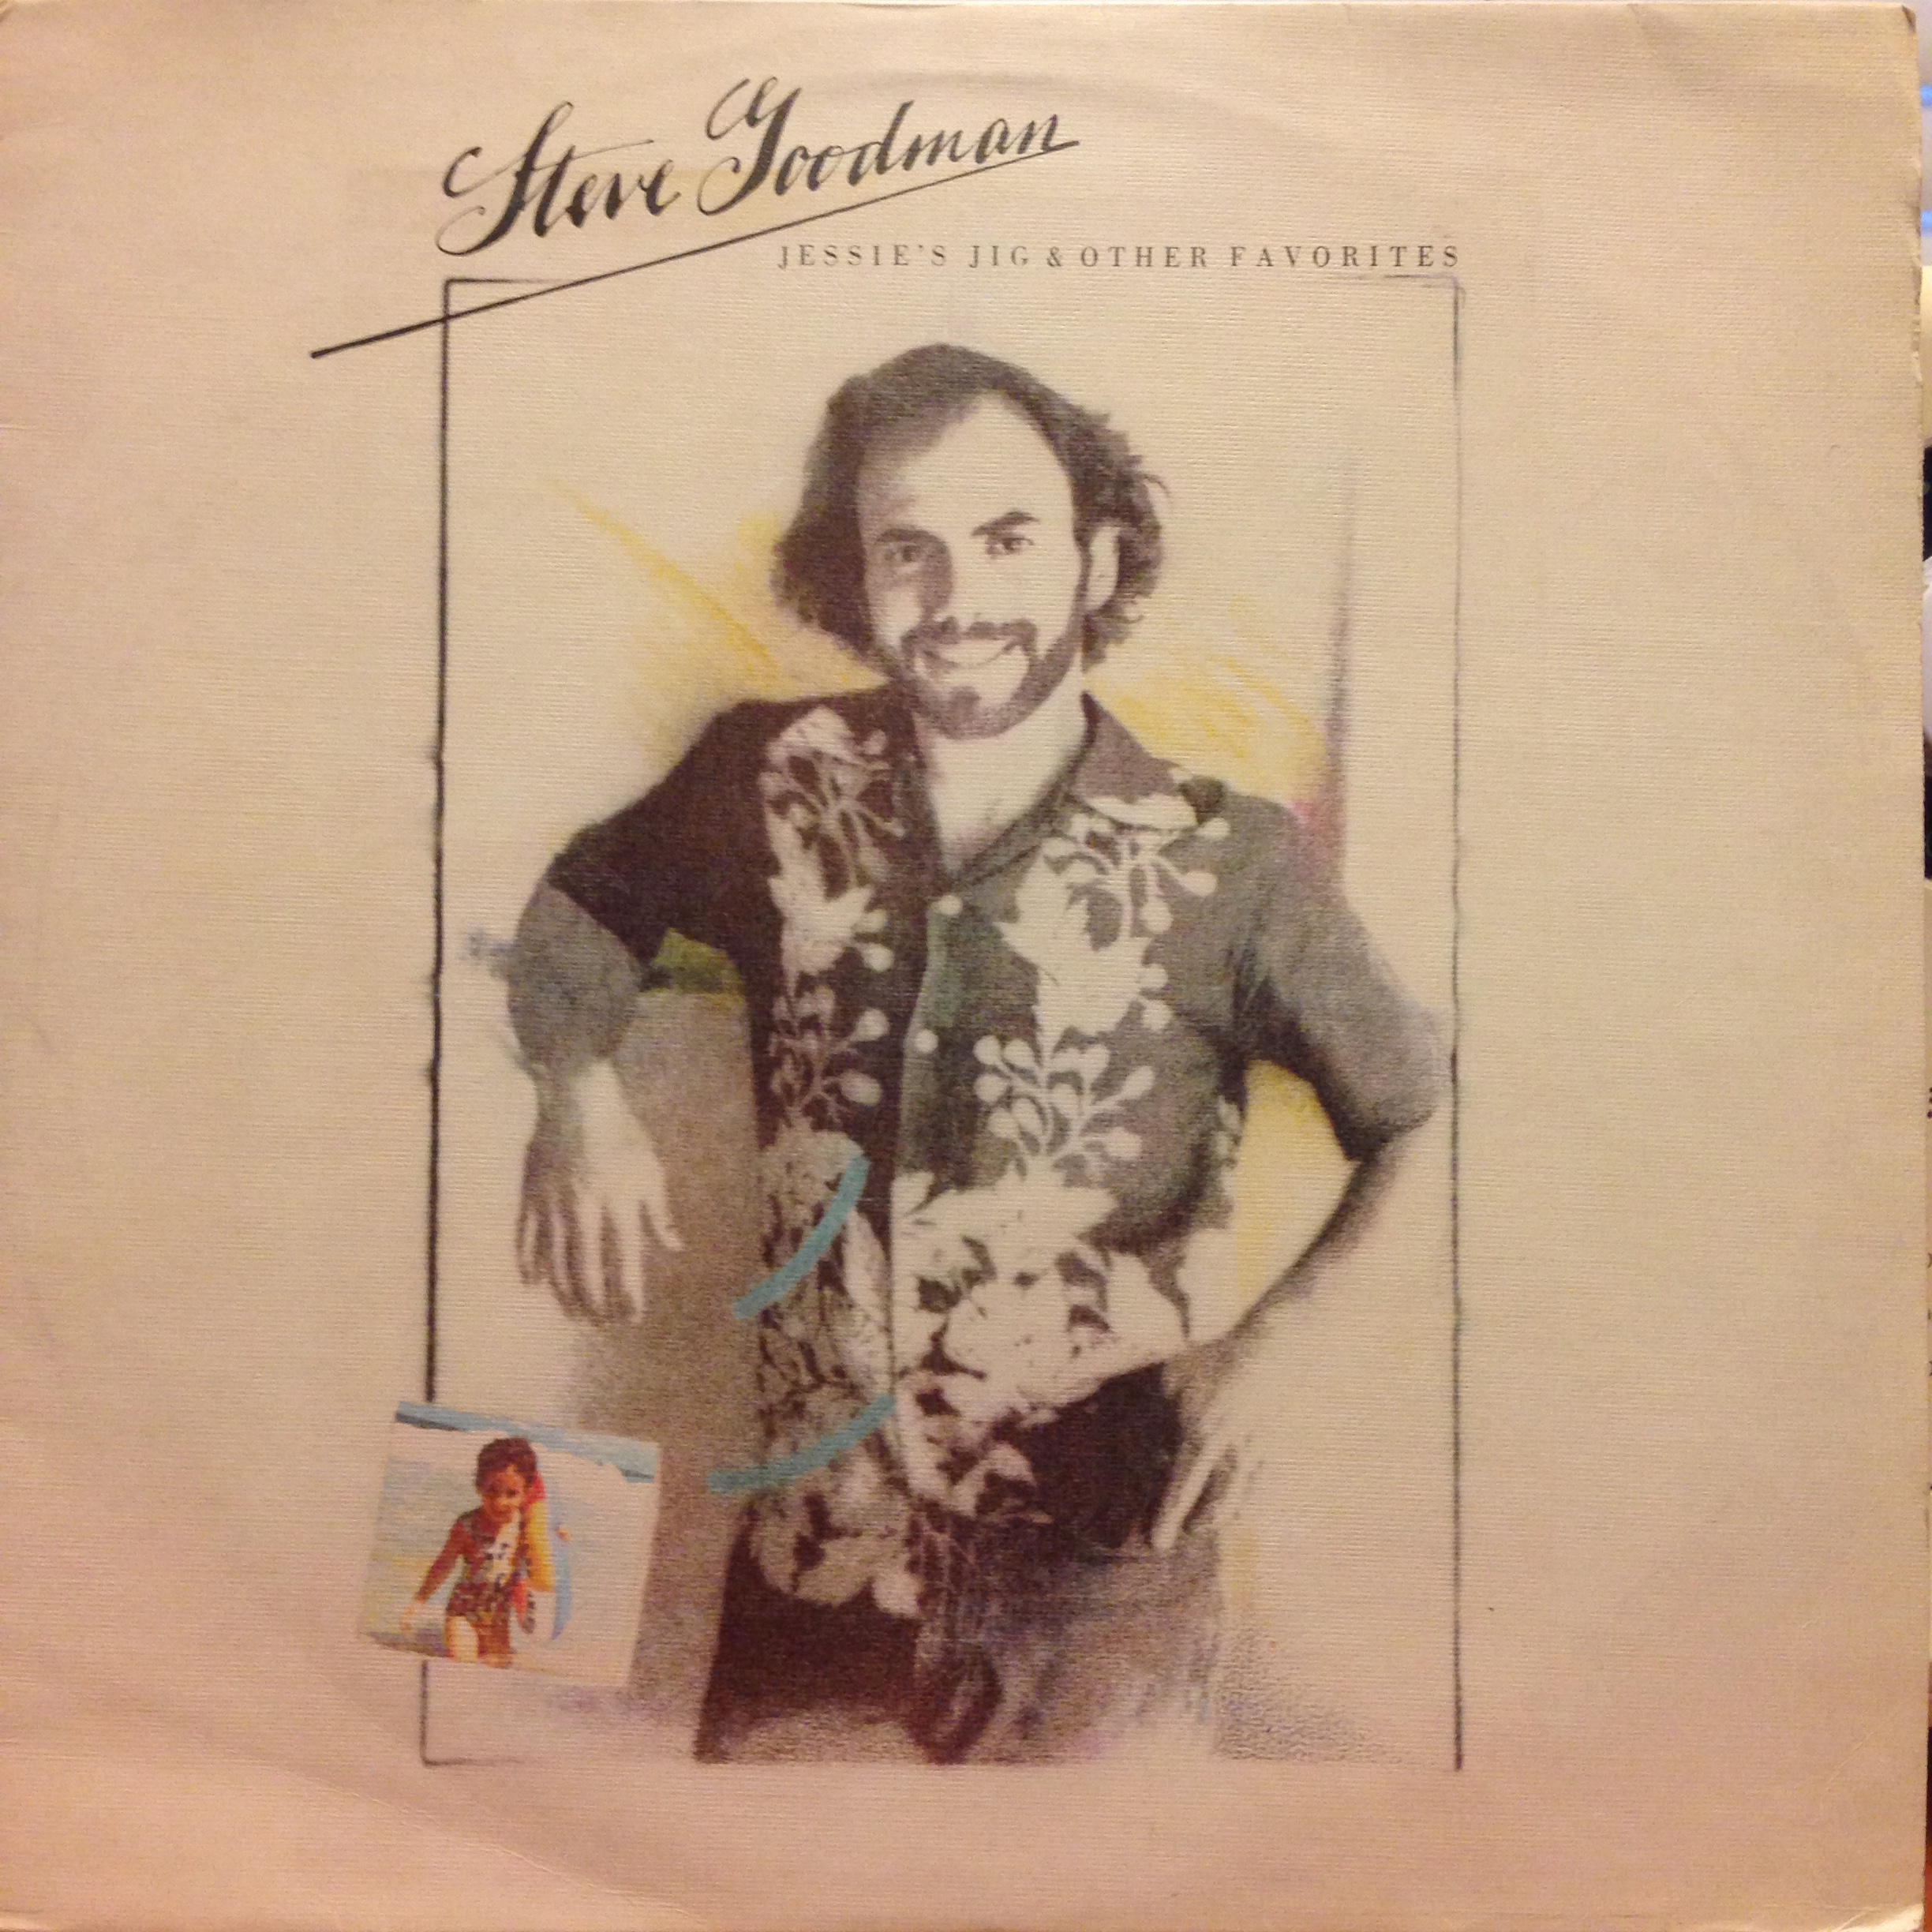 jaquettes4/Steve-Goodman_Jessie-s-Jig-And-Other-Favorites.jpg